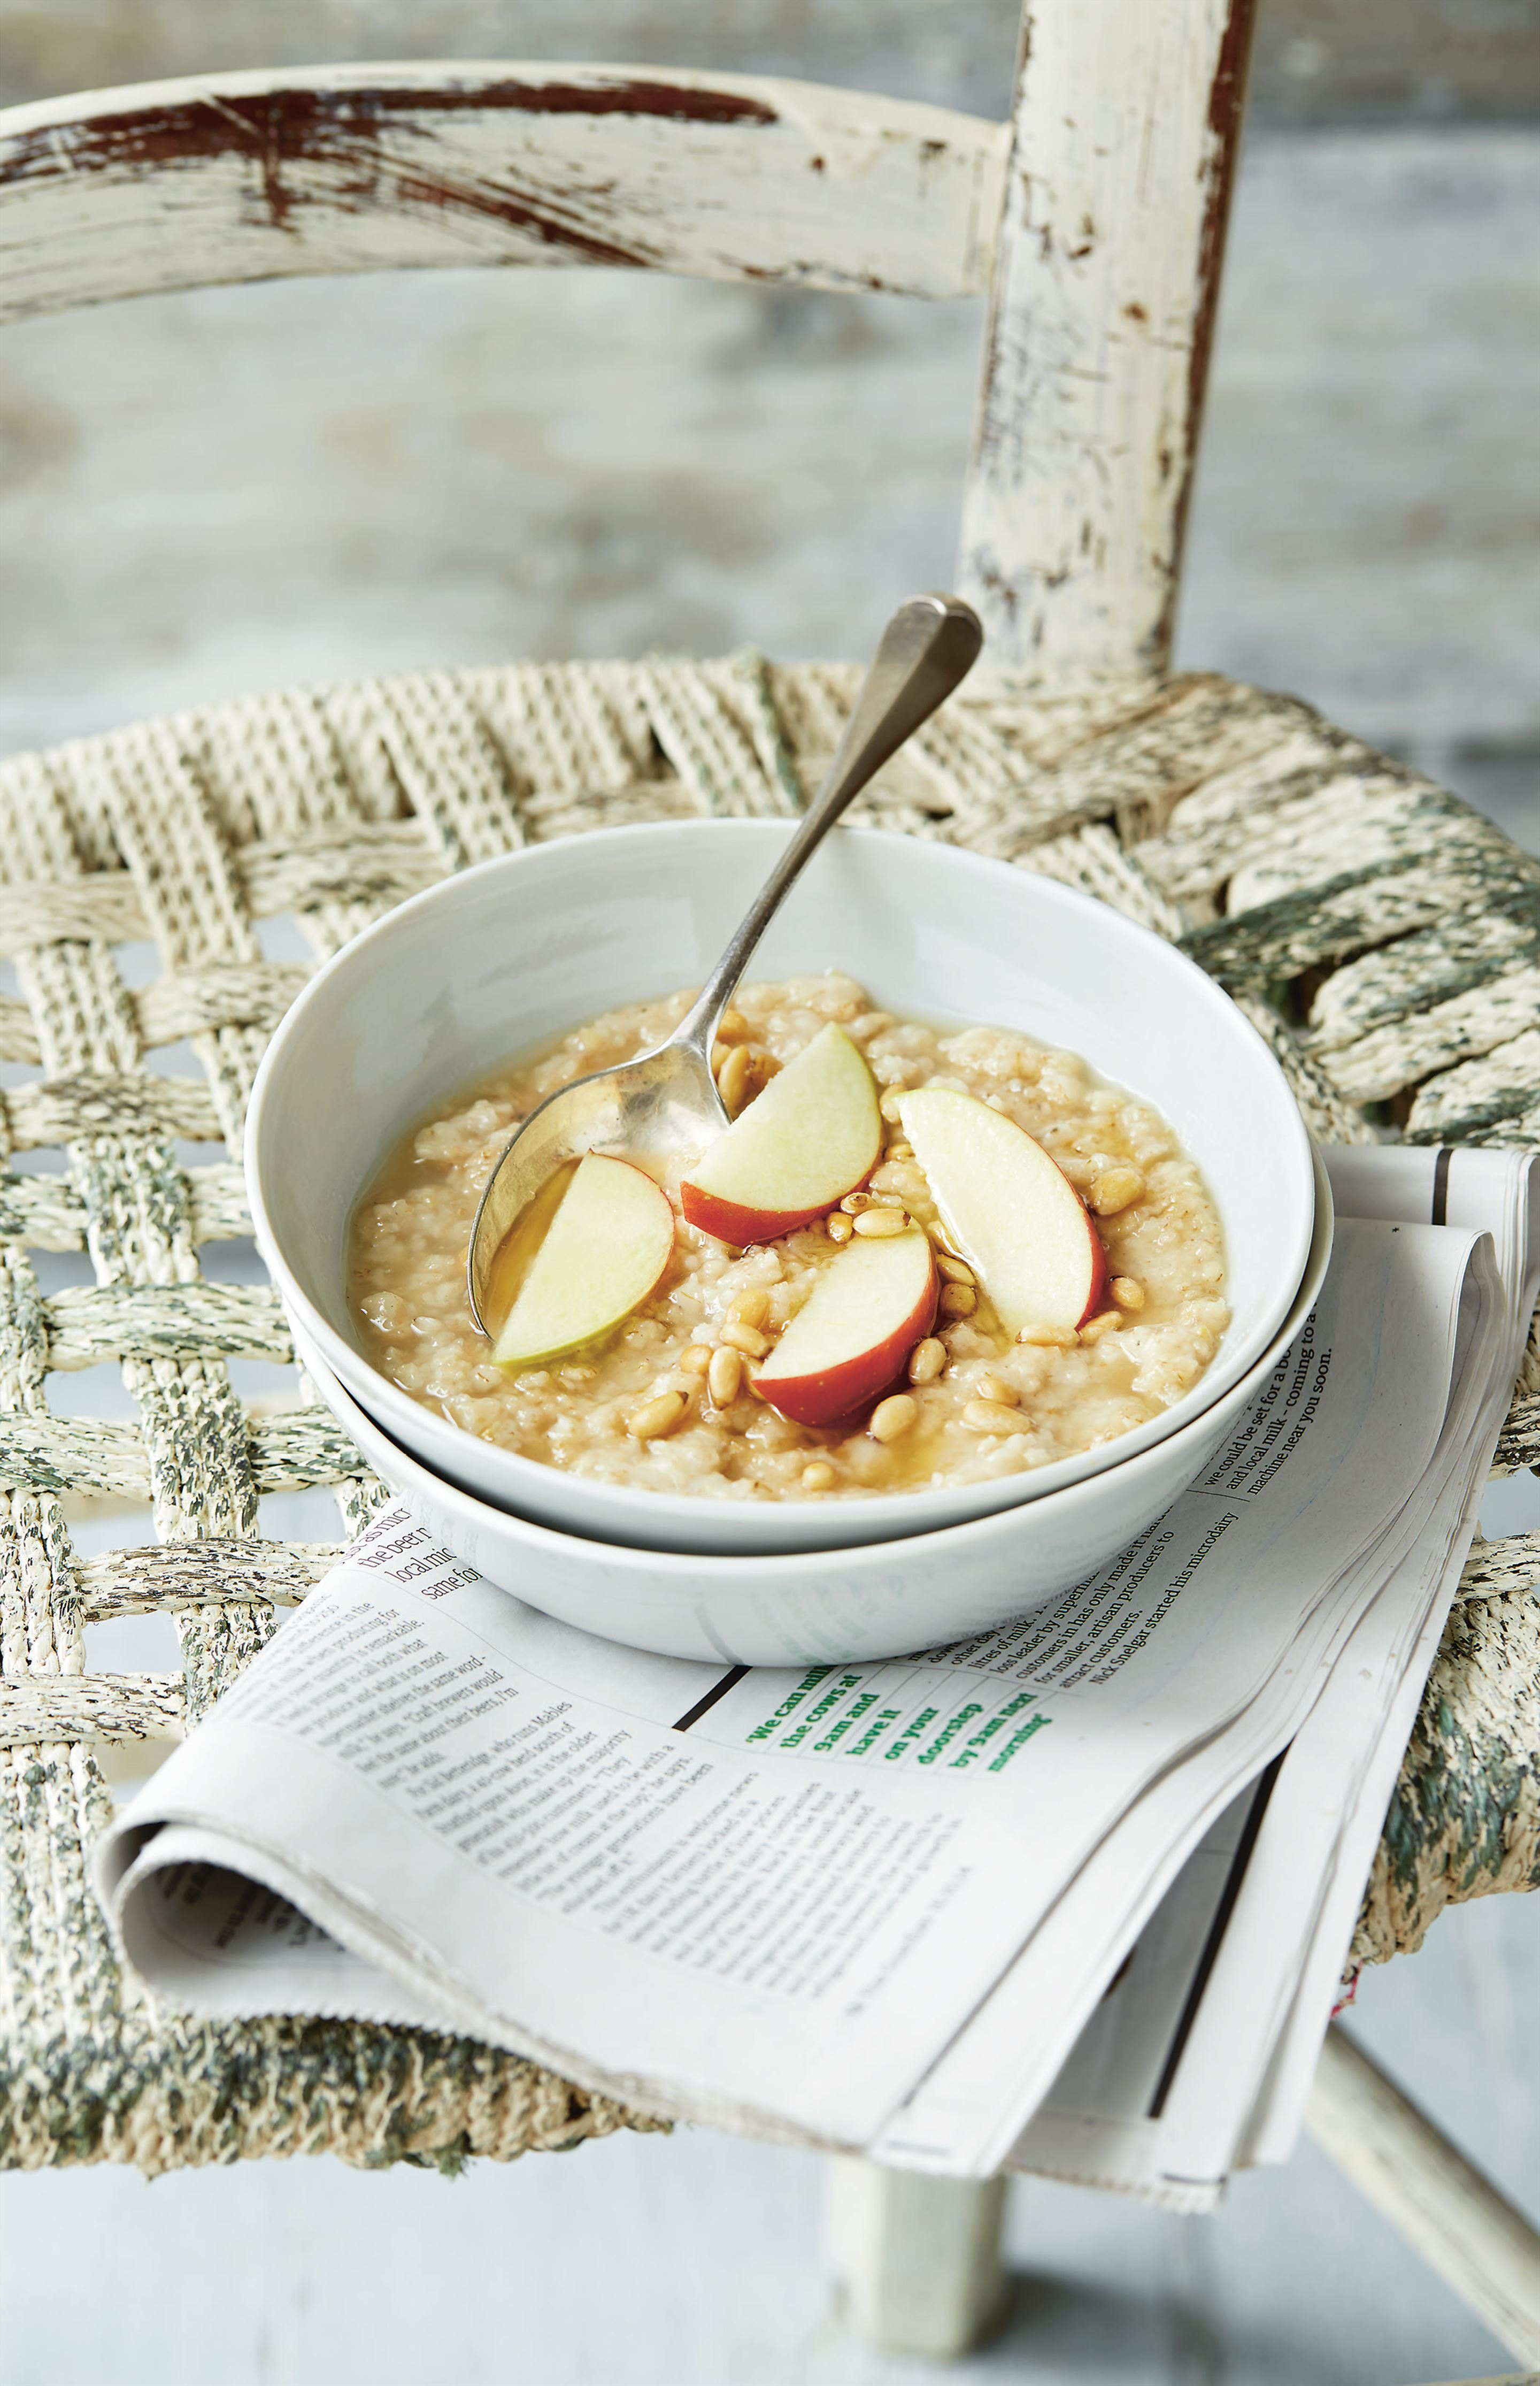 Porridge with pine nut milk